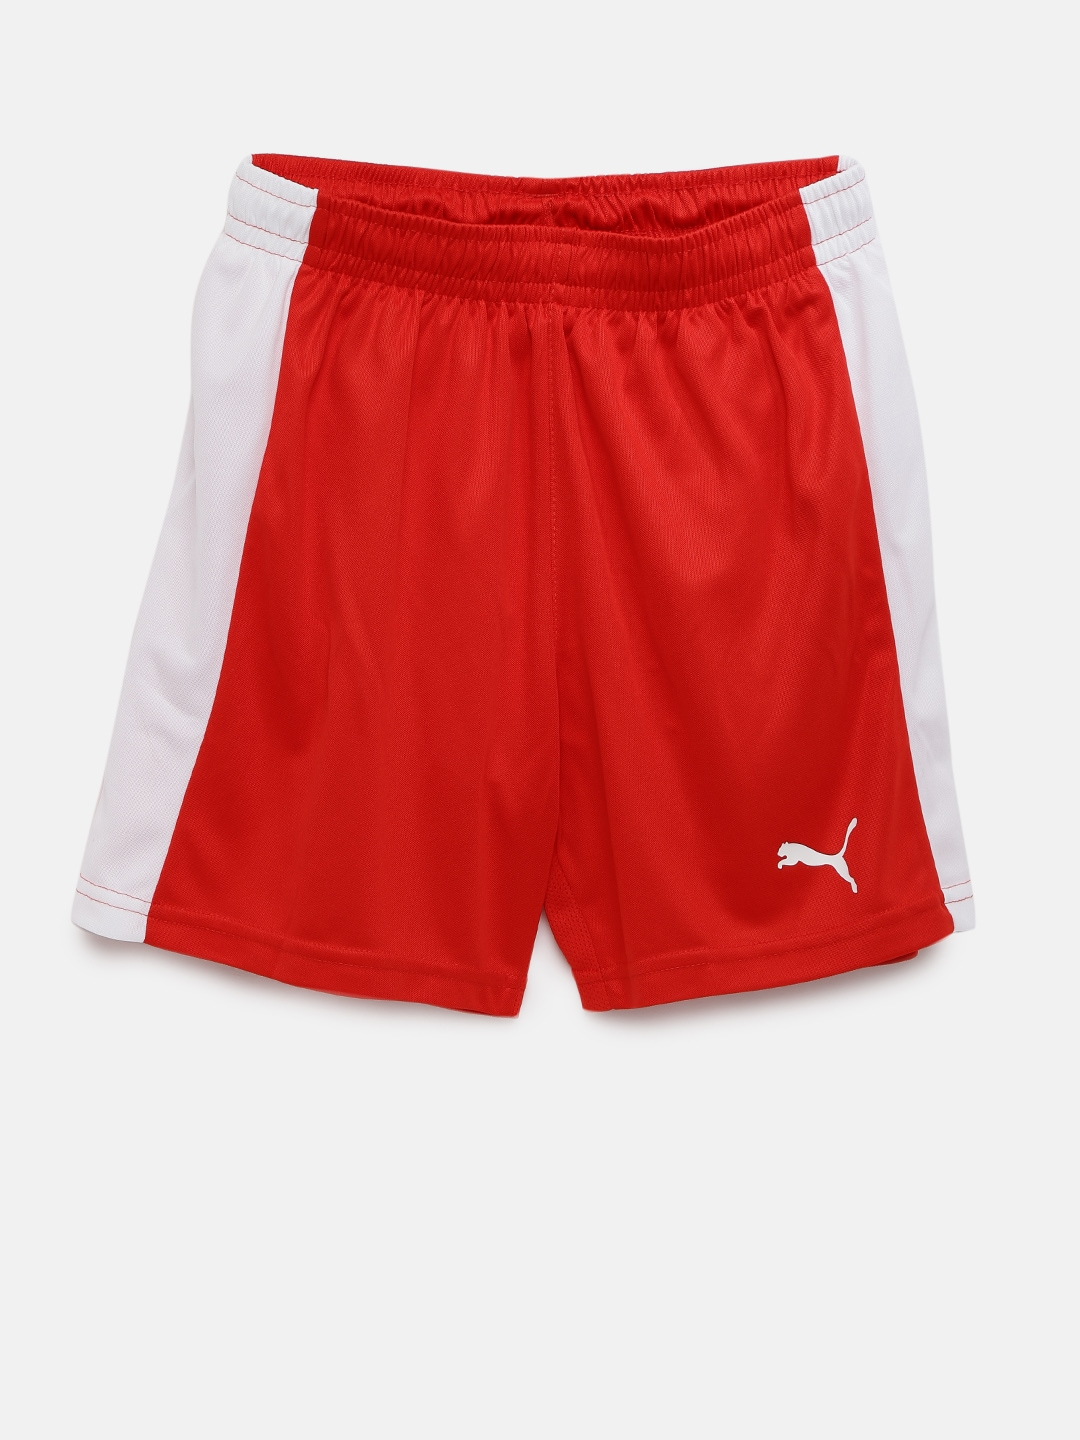 782e4dd683b4 Red Shorts - Buy Red Shorts Online in India